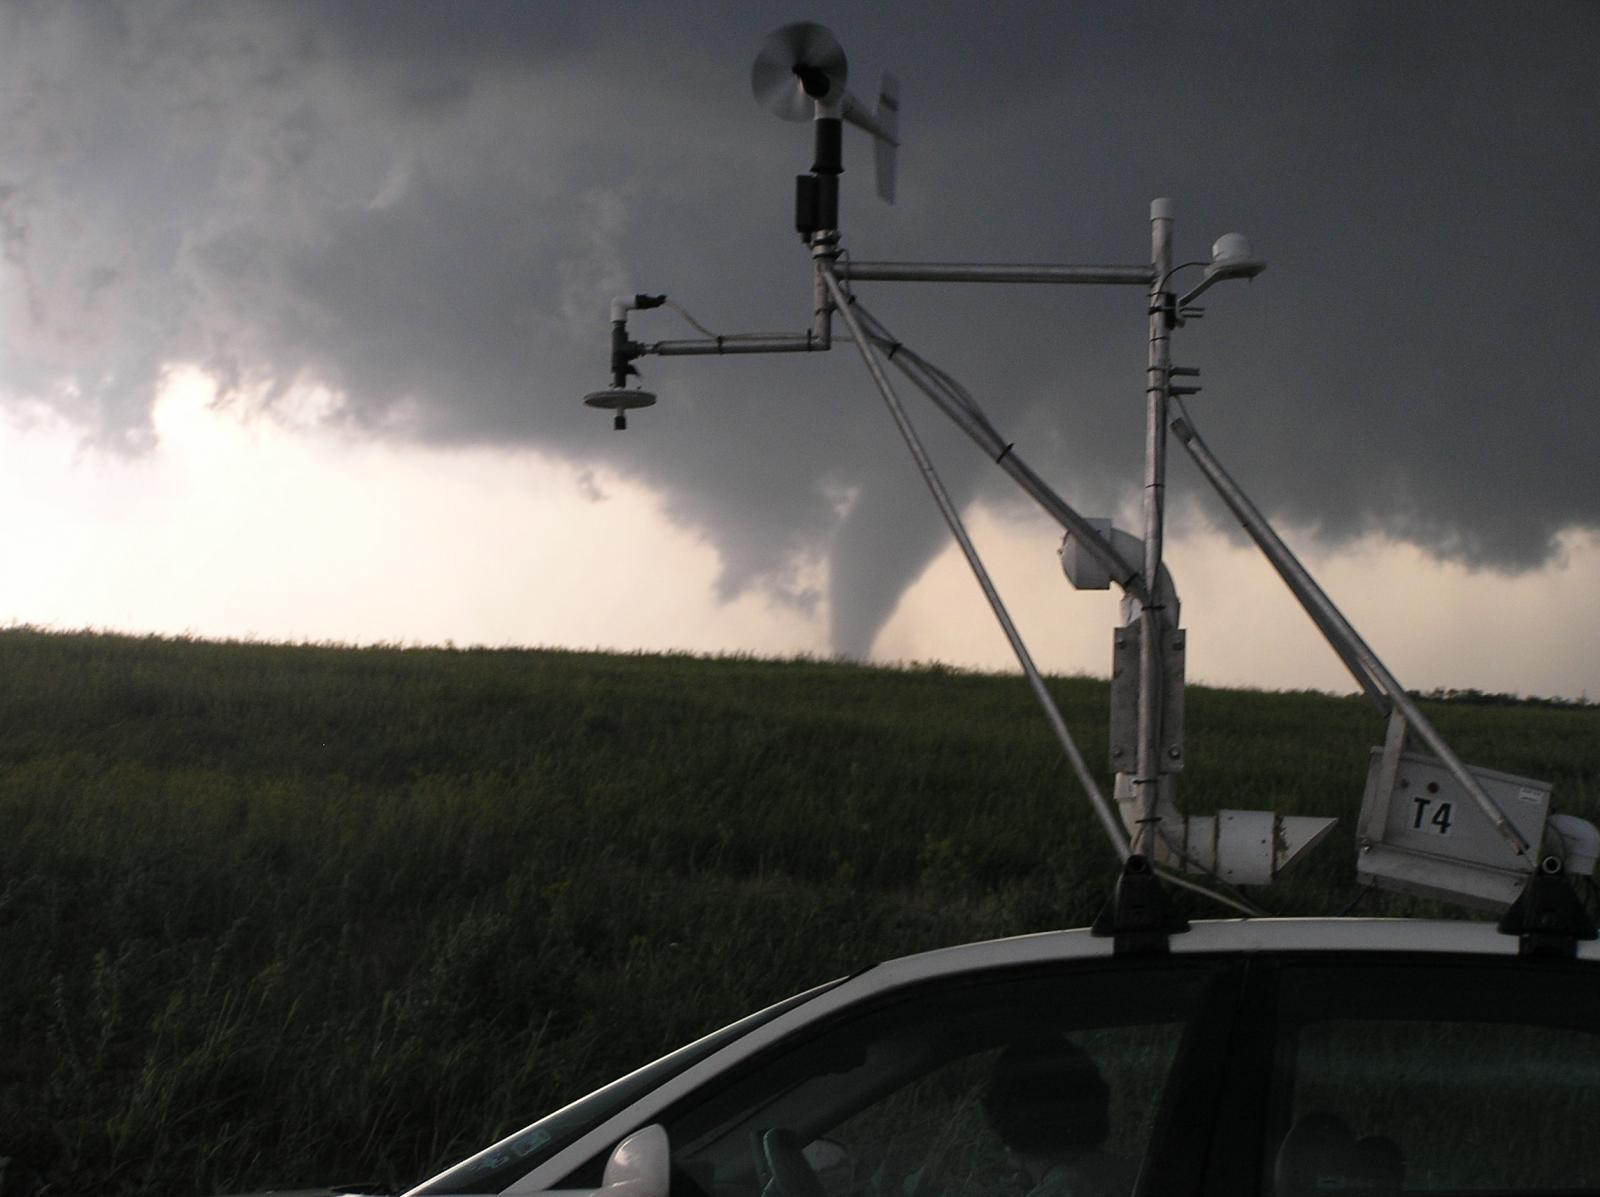 Image of Kent county tornado